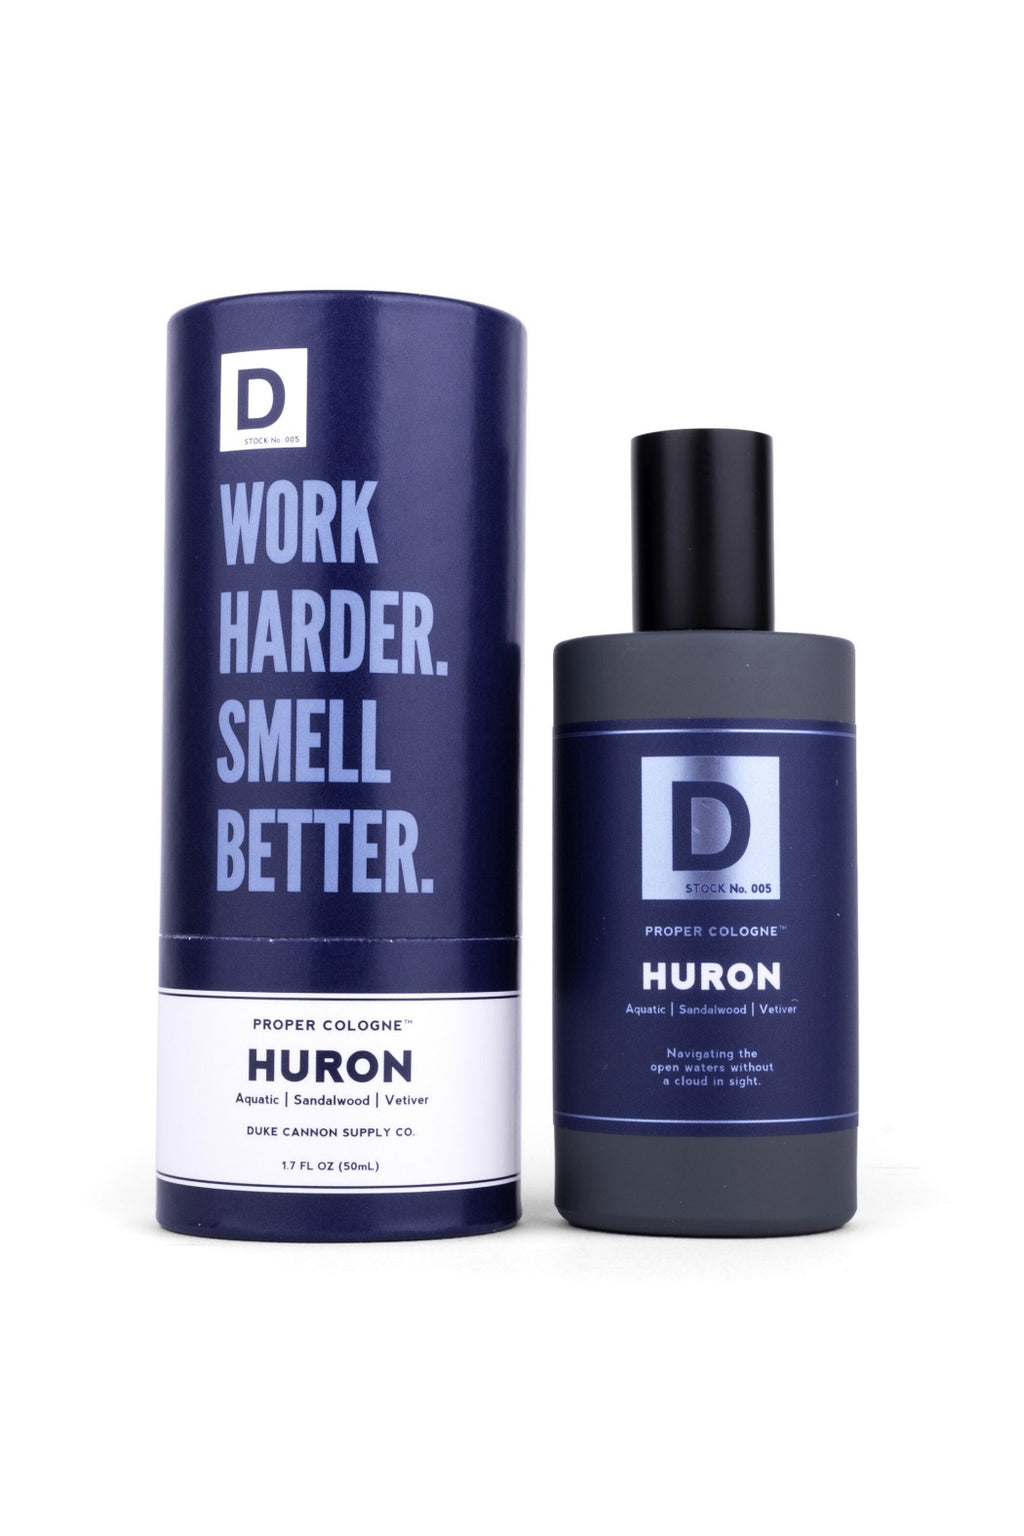 Duke Cannon Proper Cologne - Huron